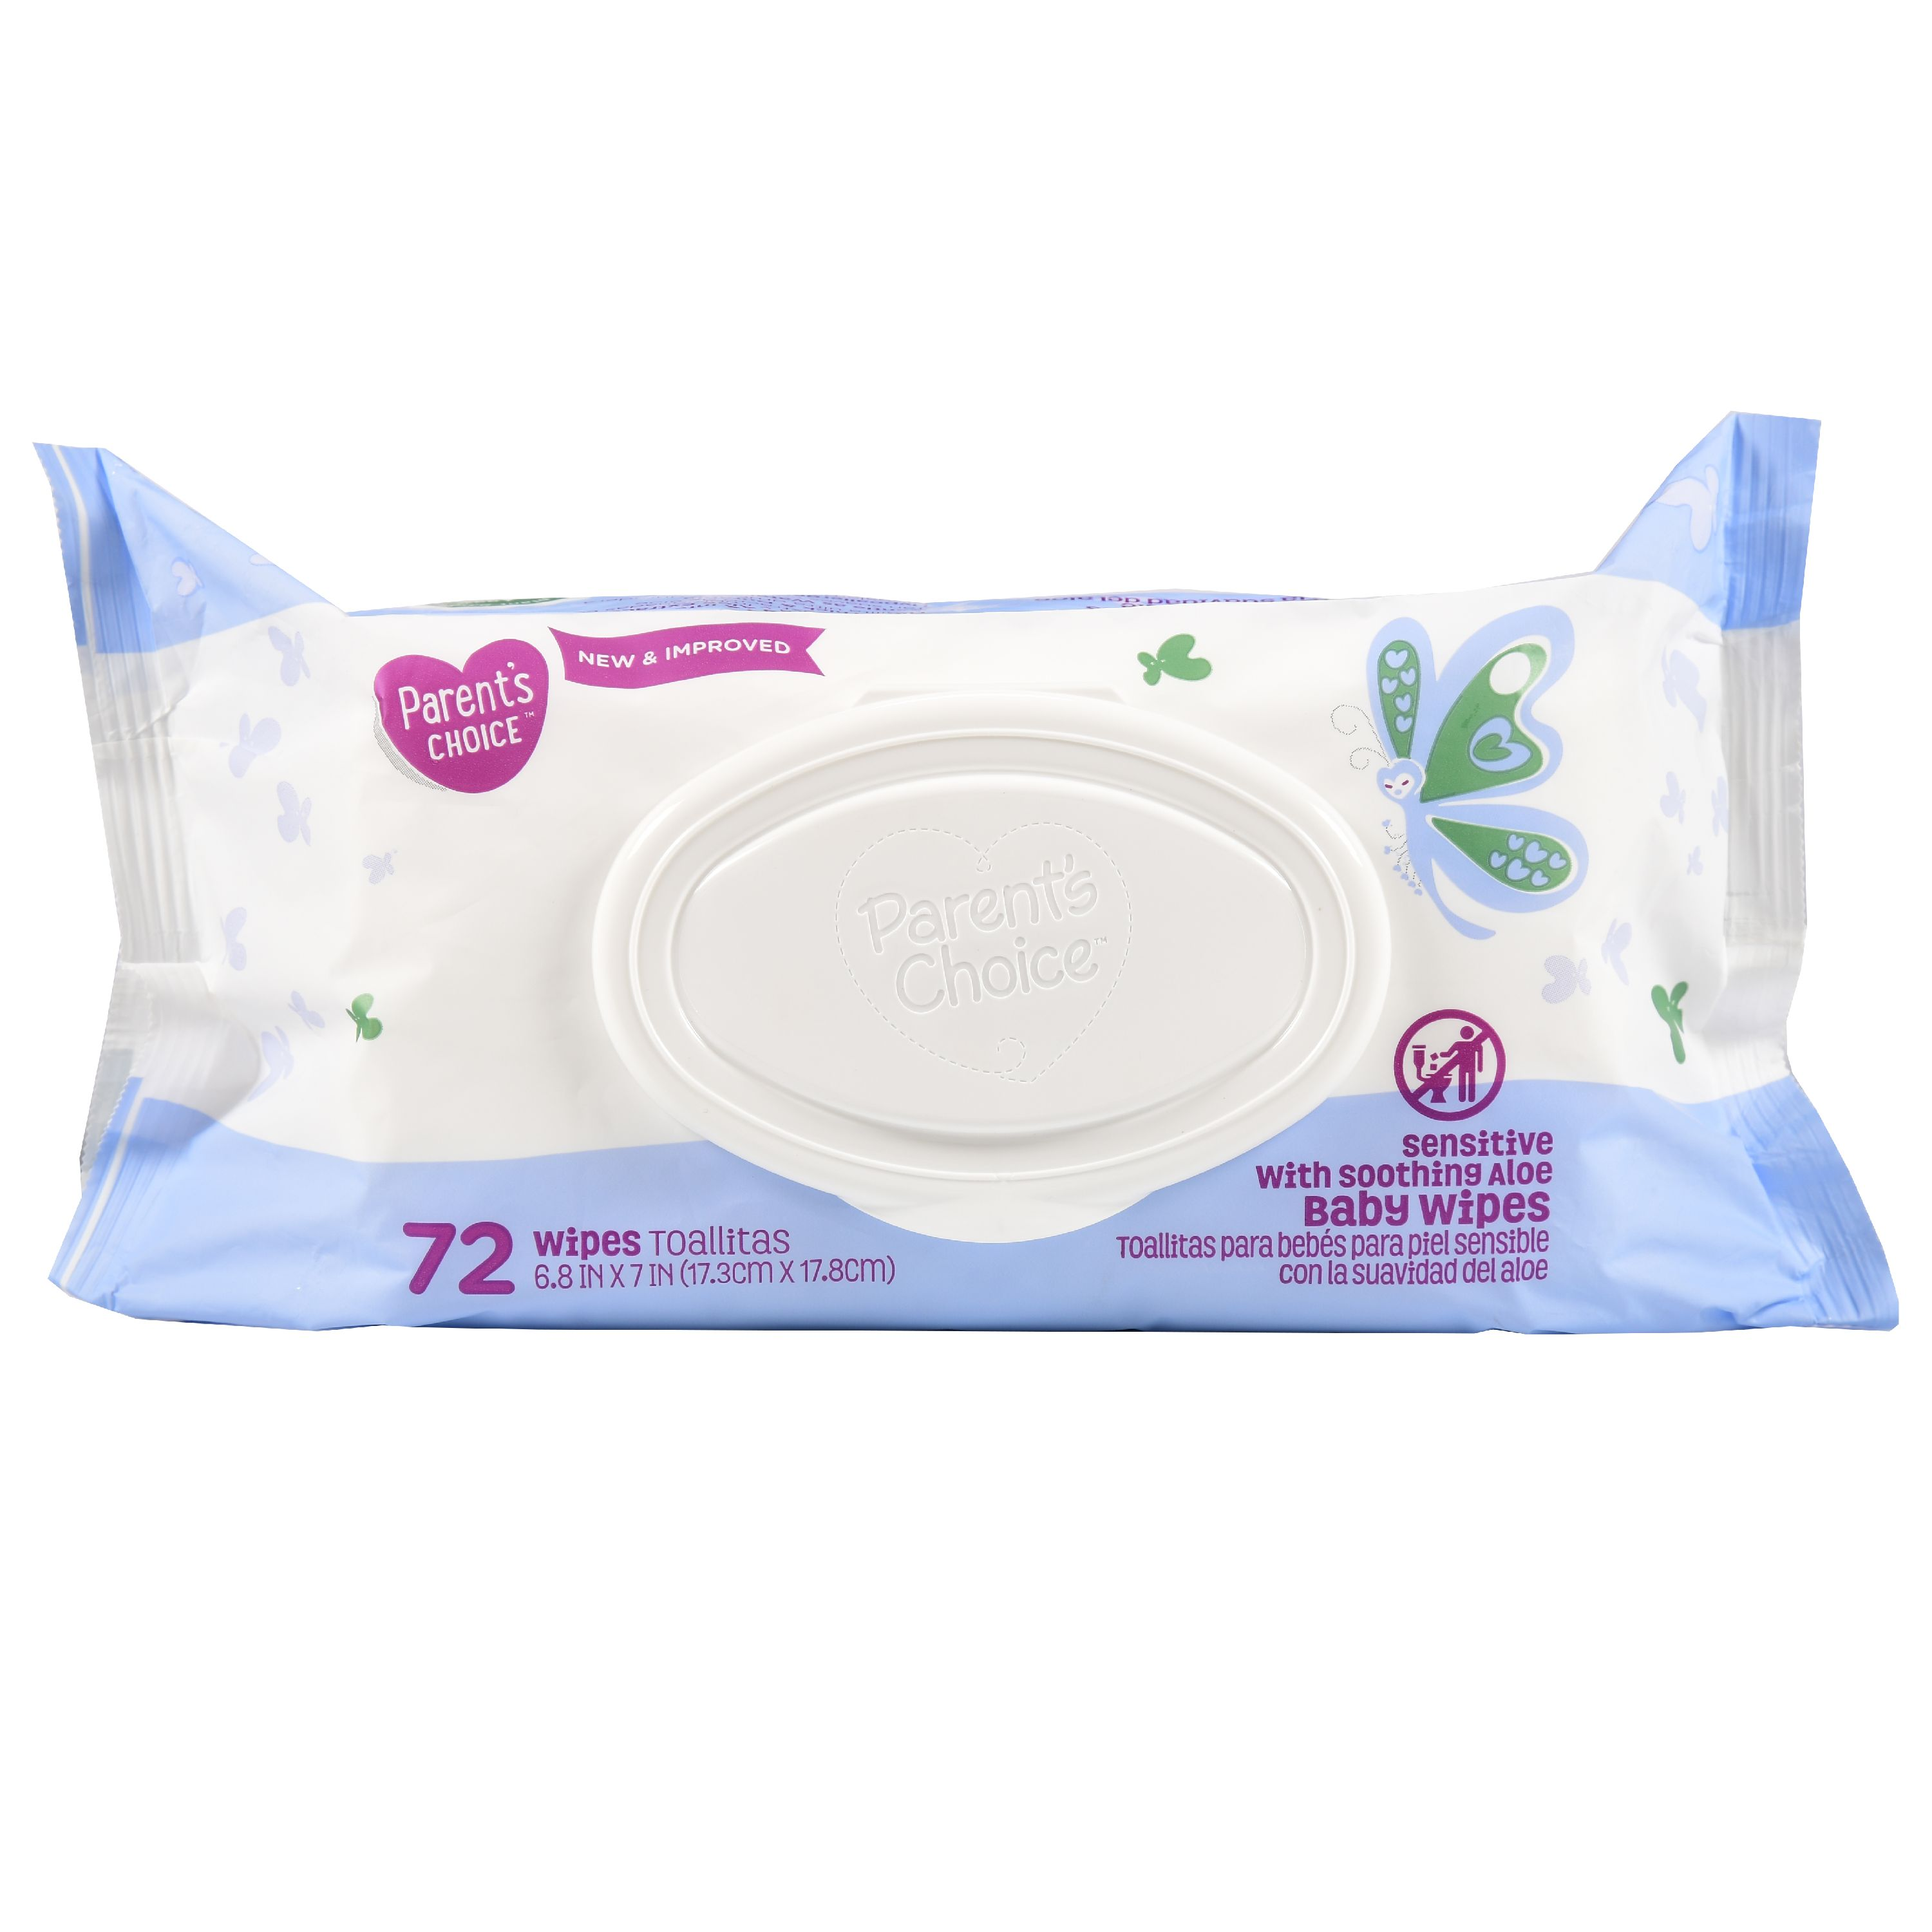 Parent's Choice Sensitive with Soothing Aloe Baby Wipes, 72 count